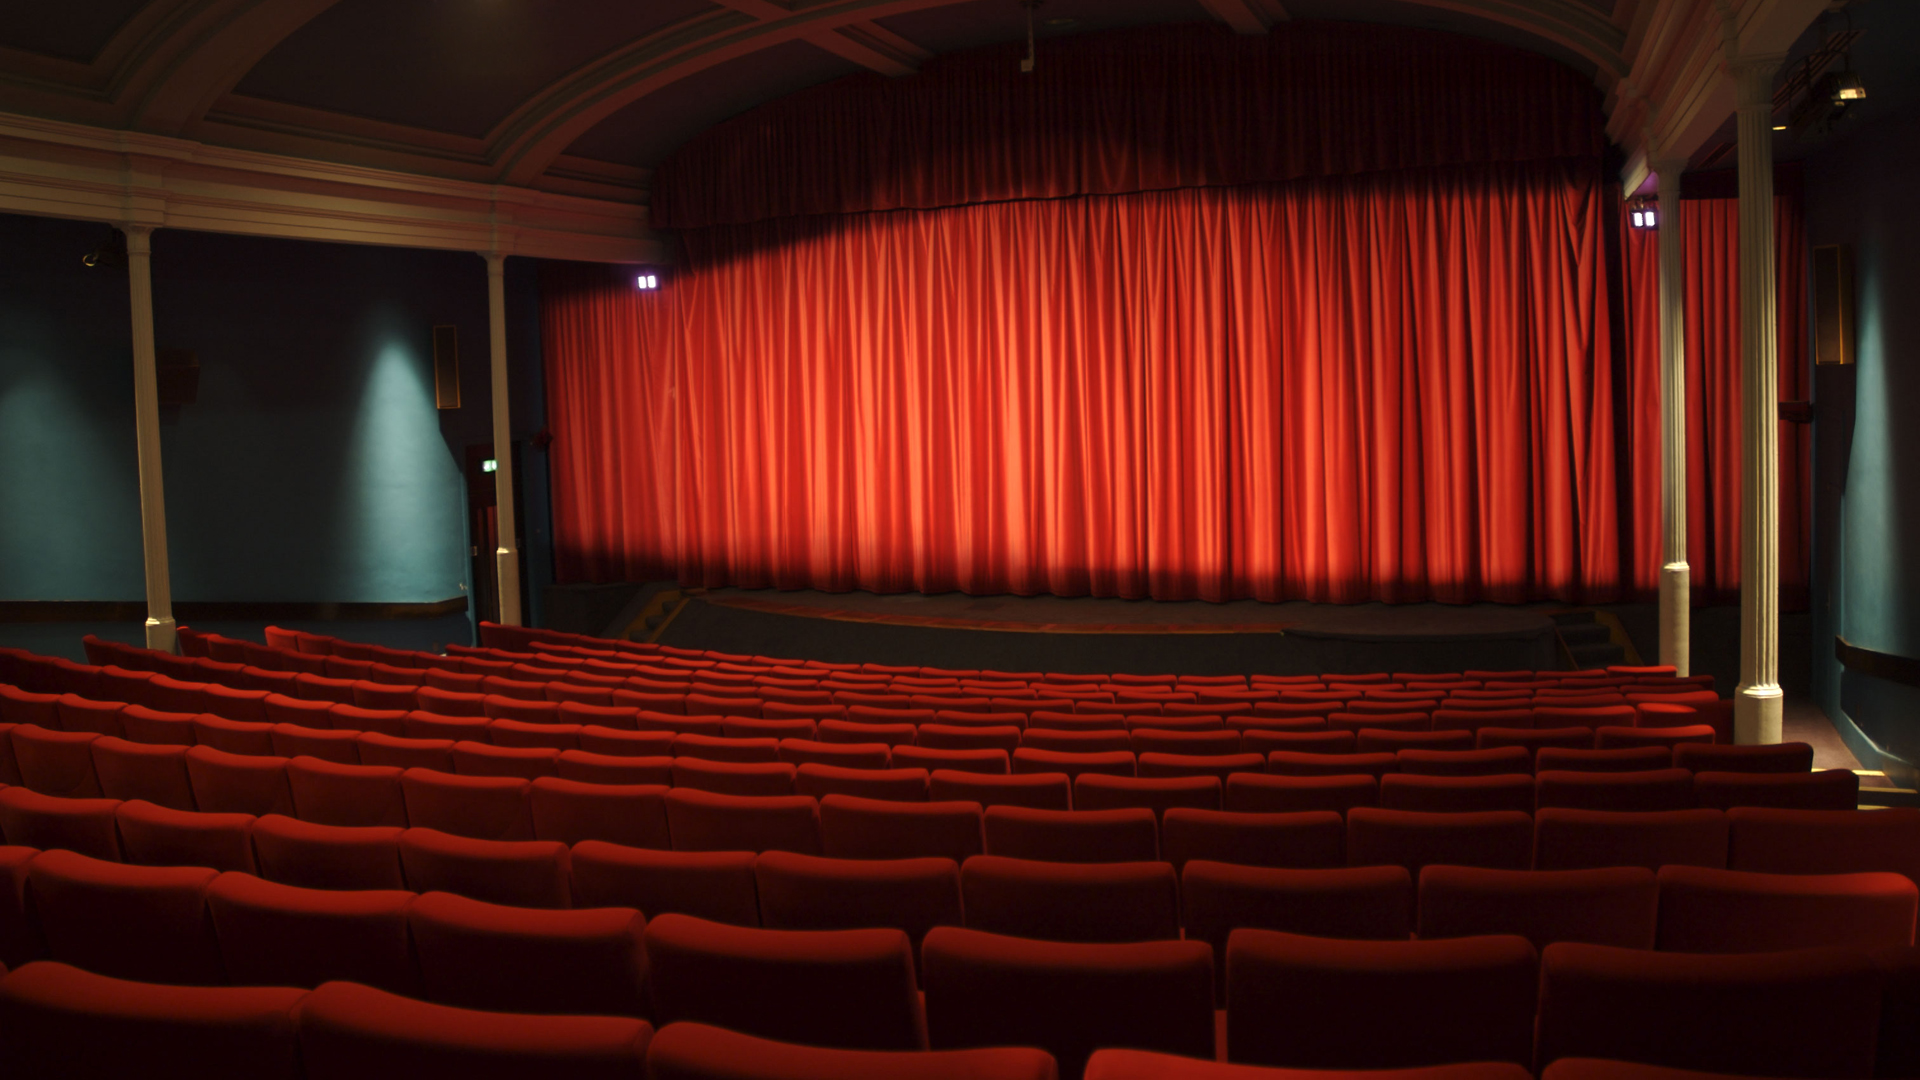 47 Movie Theater Wallpaper On Wallpapersafari